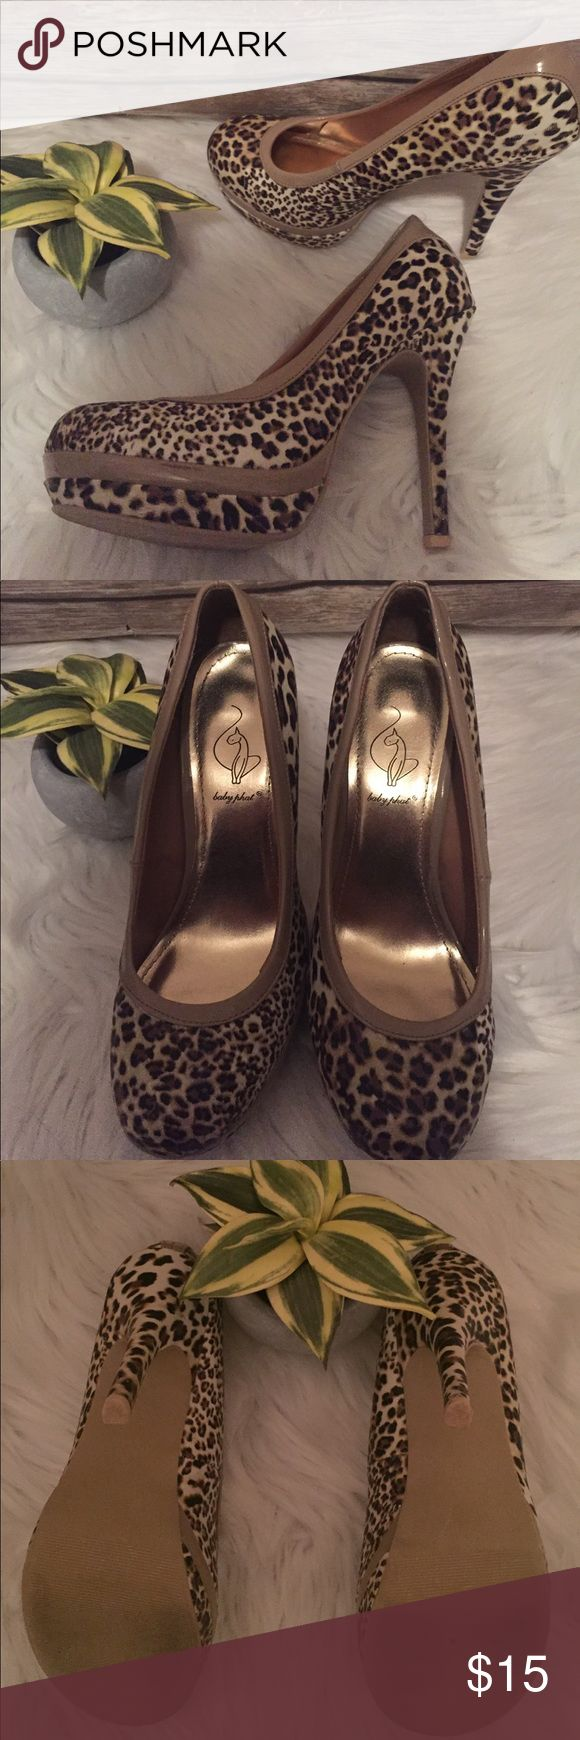 """Baby Phat Leopard Print Heels Size 7.5 Gorgeous Leopard printed heels. Great condition. Bottoms are worn but the overall outer appearance is almost flawless. Gold soles. 4 1/2-5"""" heel. Baby Phat Shoes Heels"""